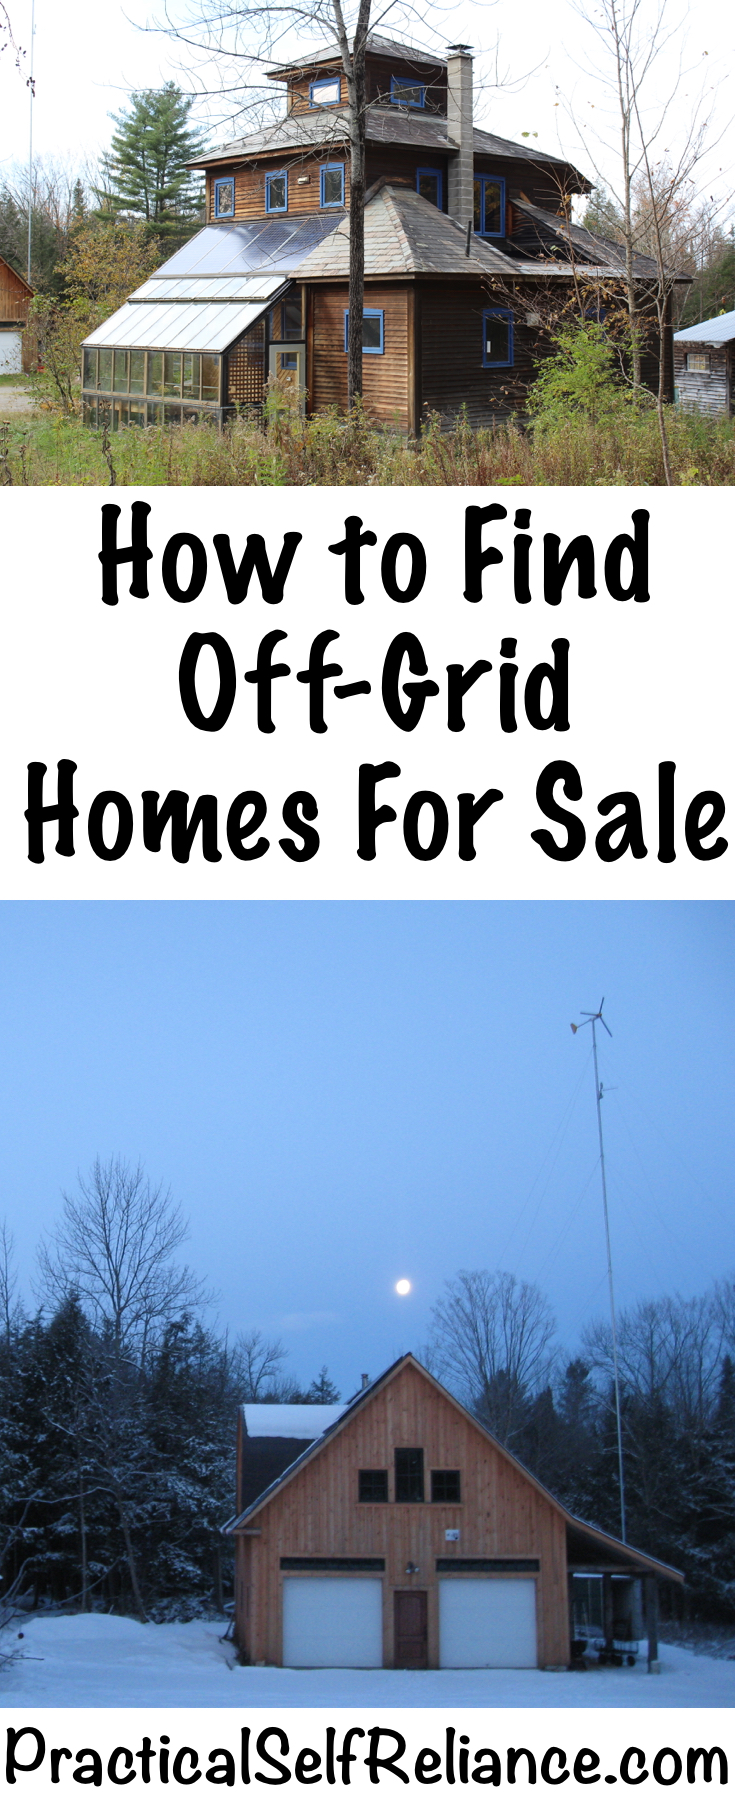 How to Find Off Grid Homes For Sale ~ Remote Off Grid Cabins for Your Dream Homestead or Survival Retreat